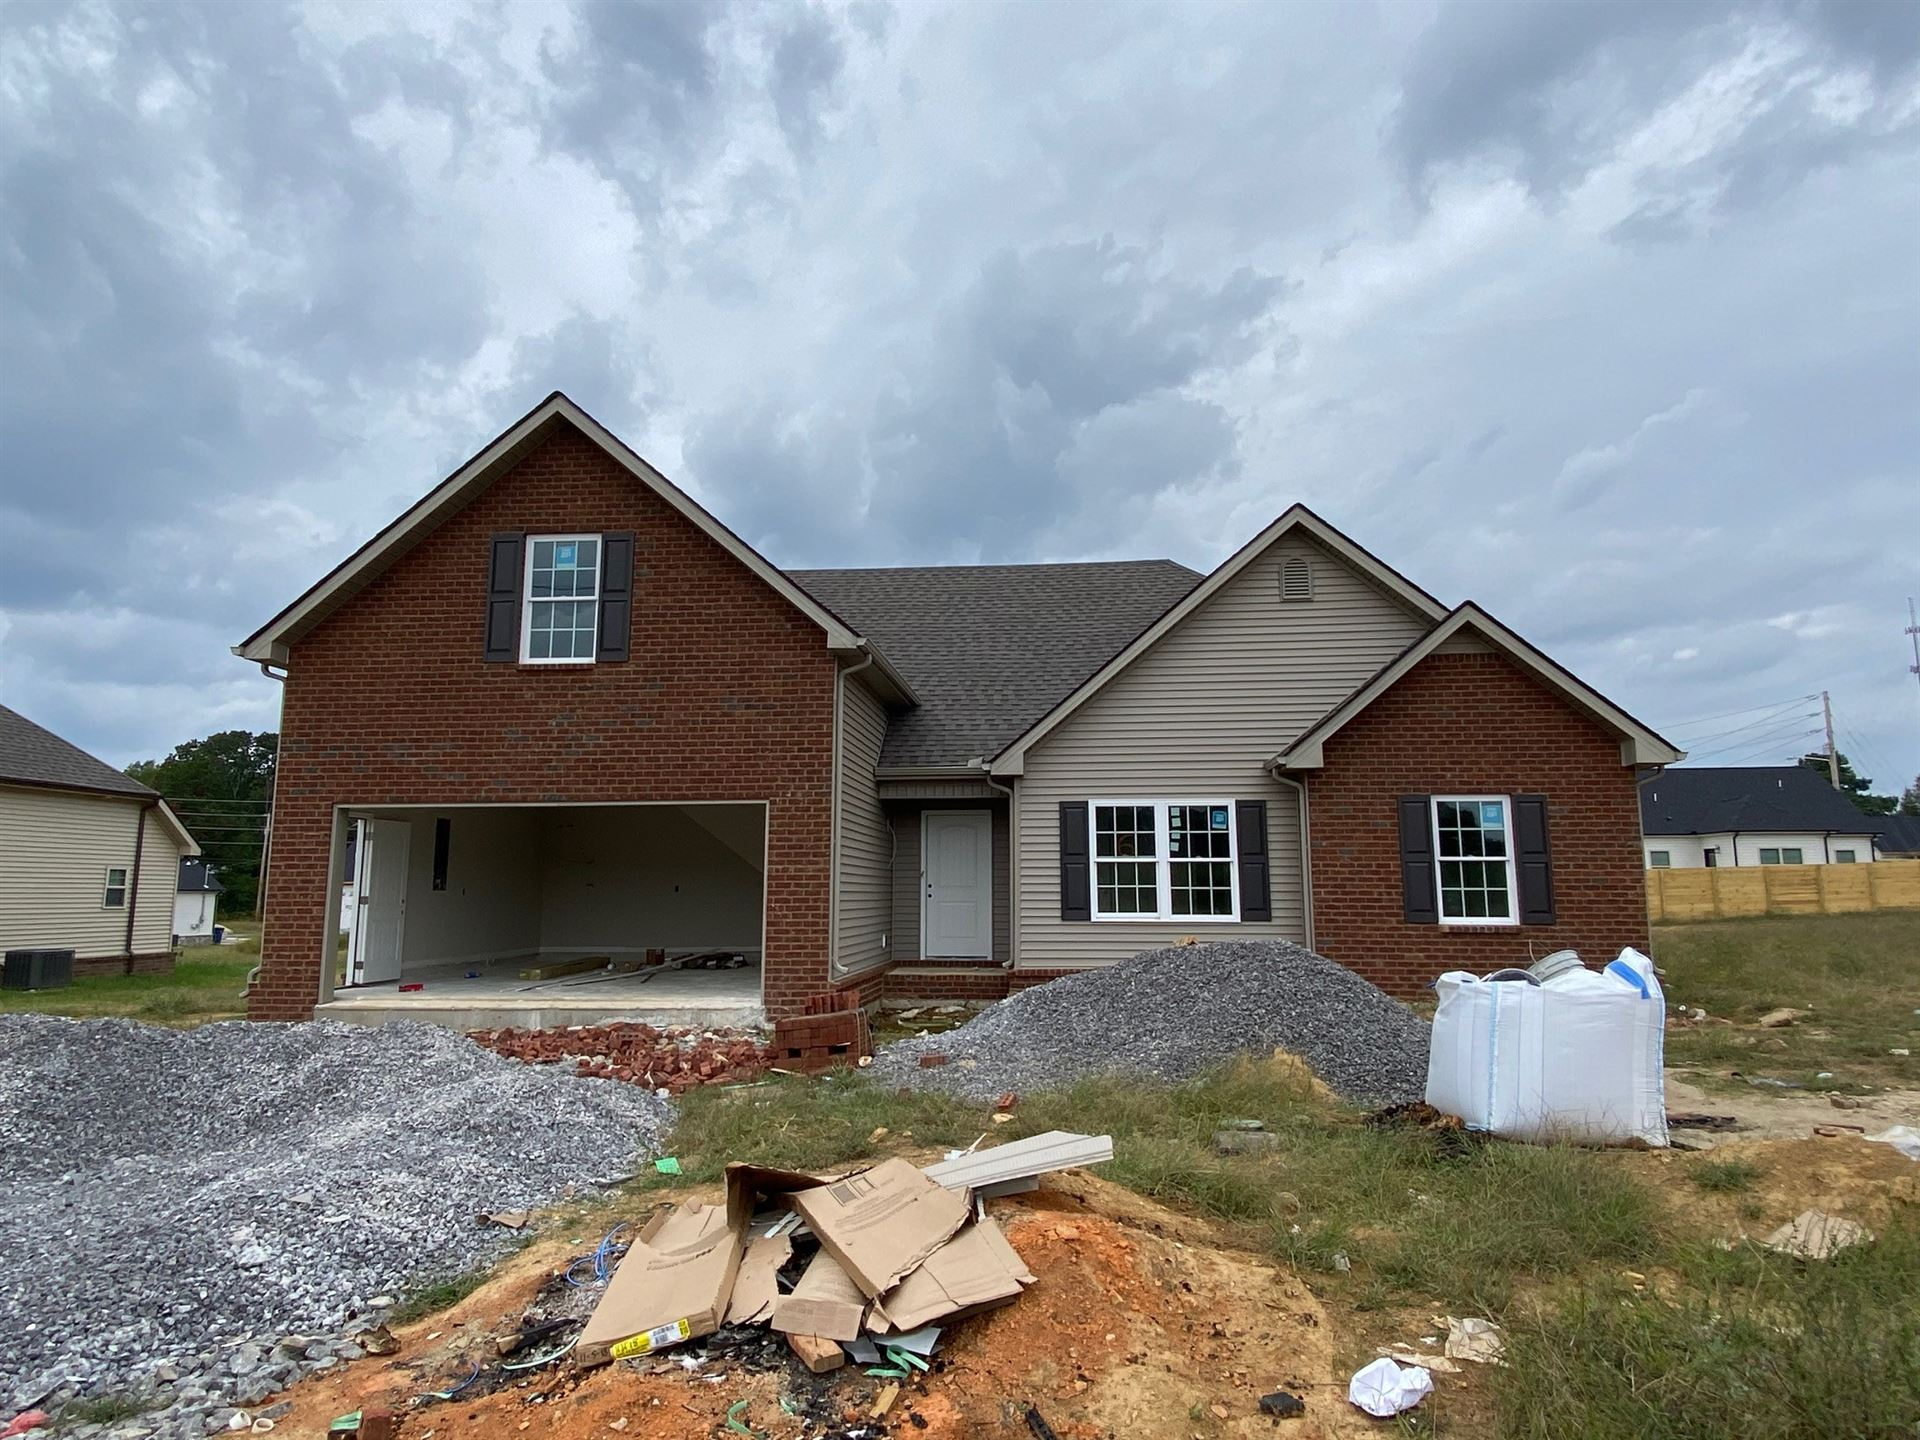 133 Grace Ct, Manchester, TN 37355 - MLS#: 2178308